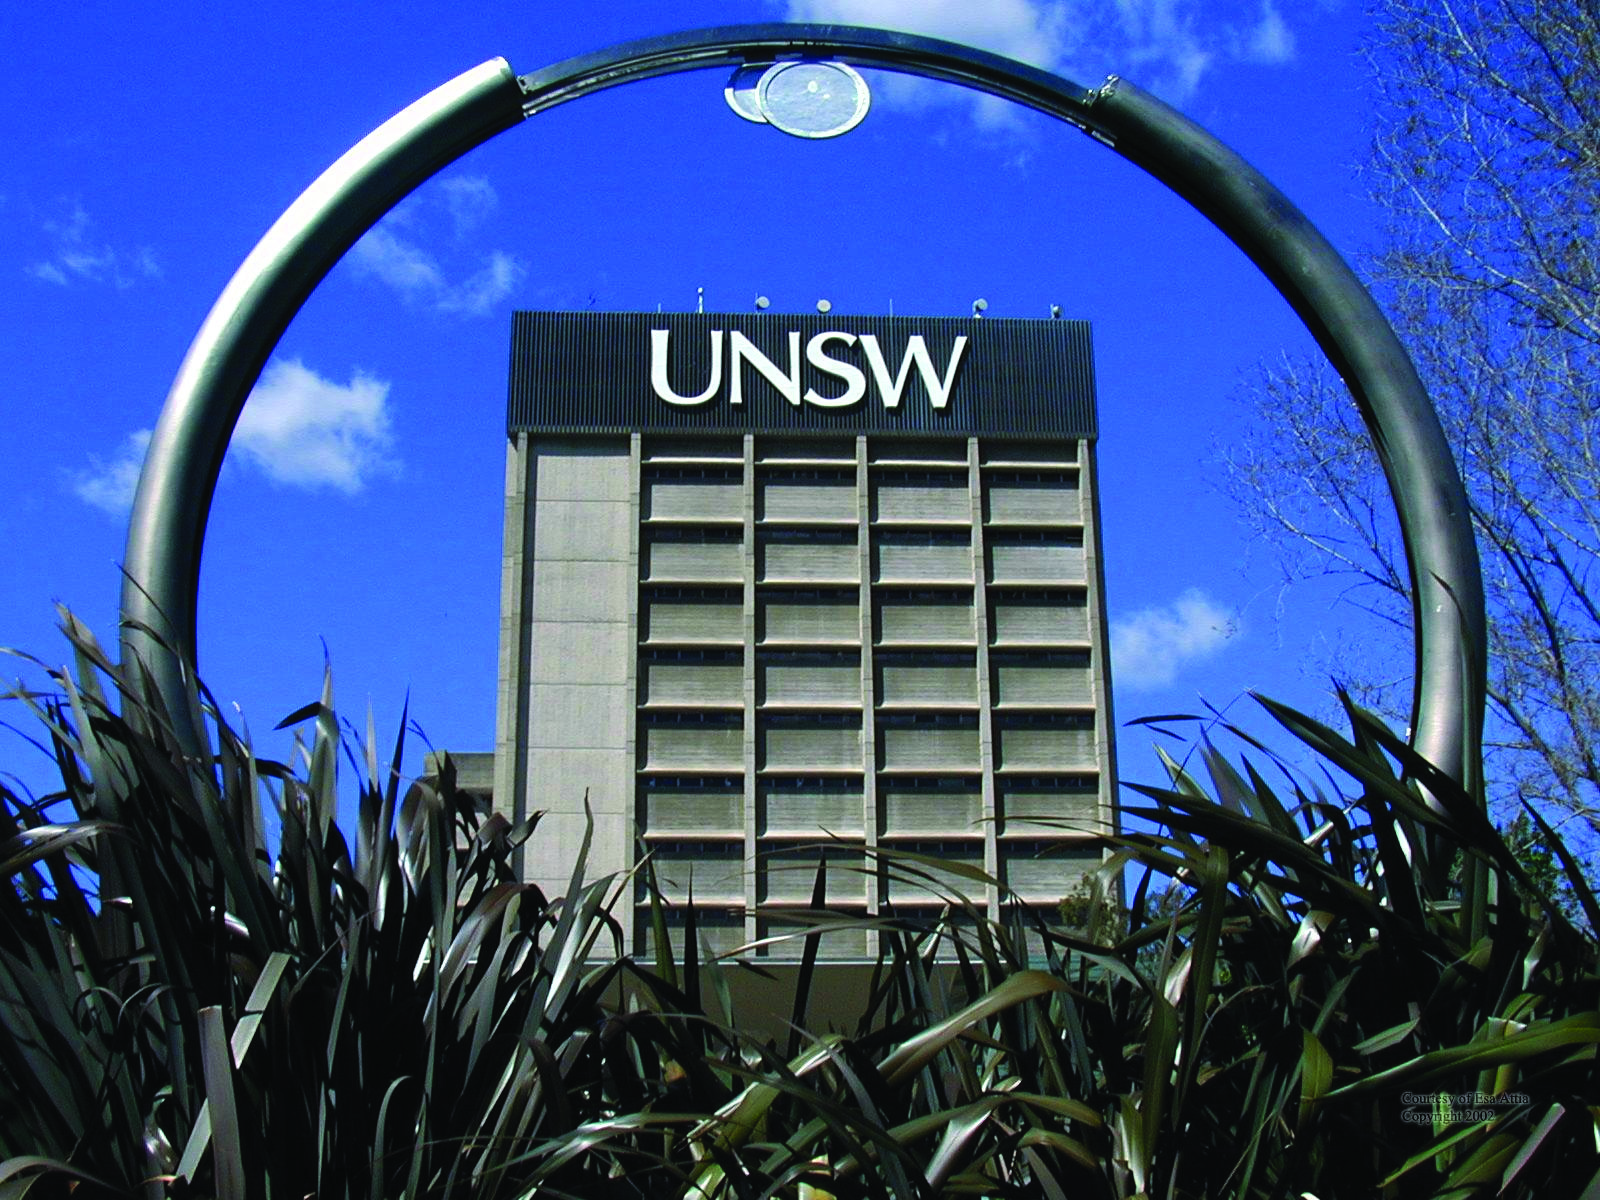 Phd thesis unsw